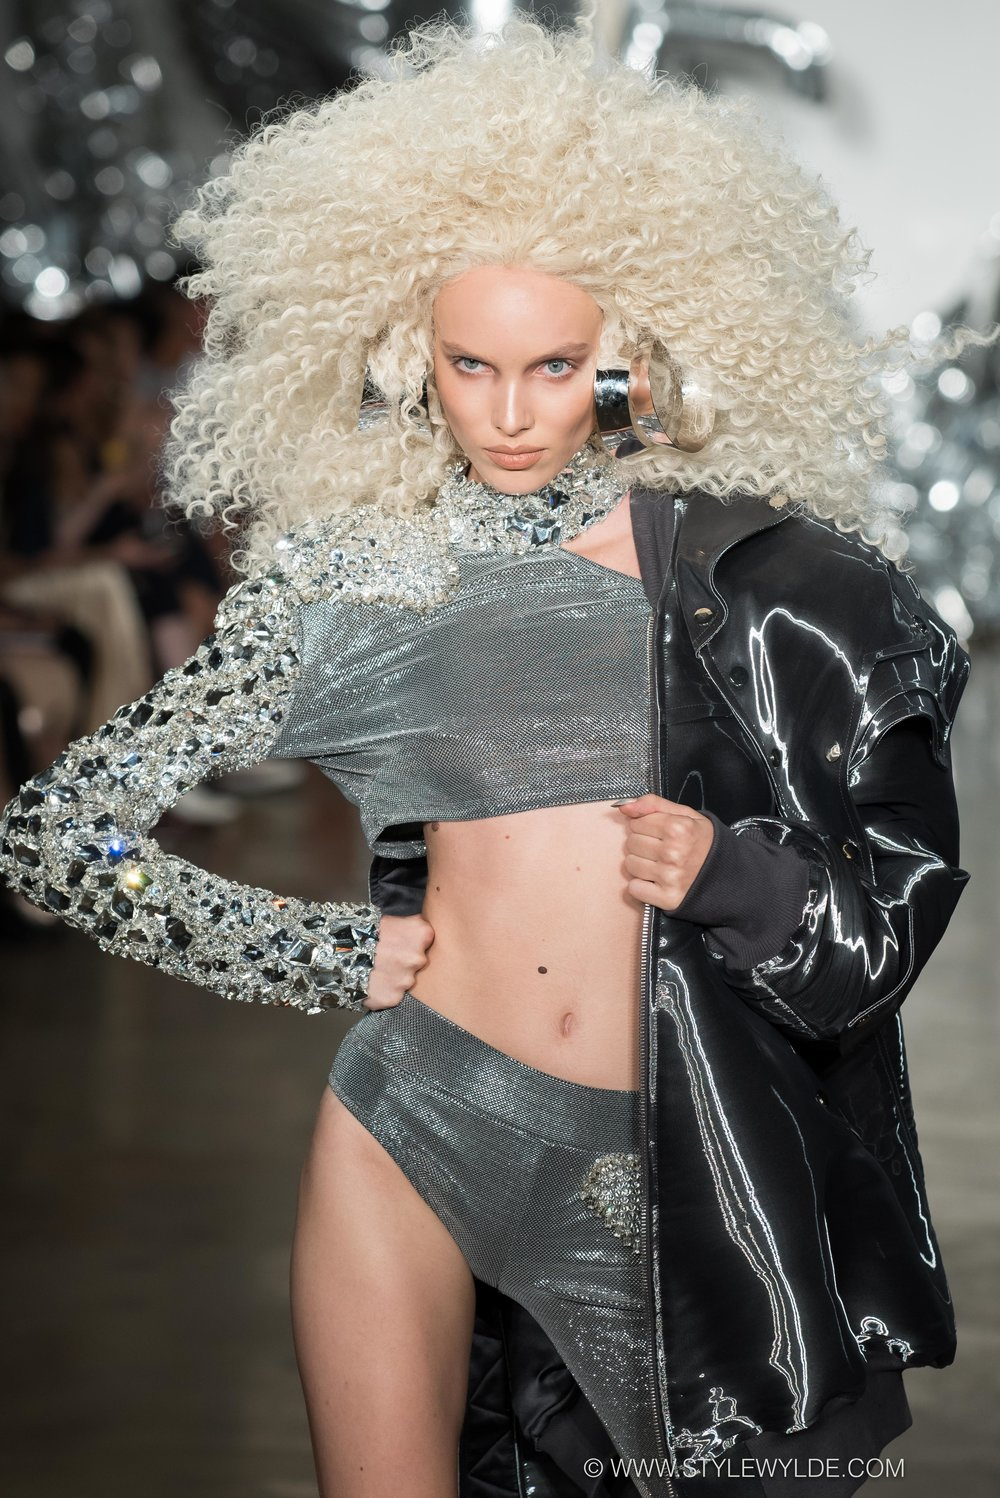 stylewylde-The Blonds SS17-FOH- Edits-29.jpg